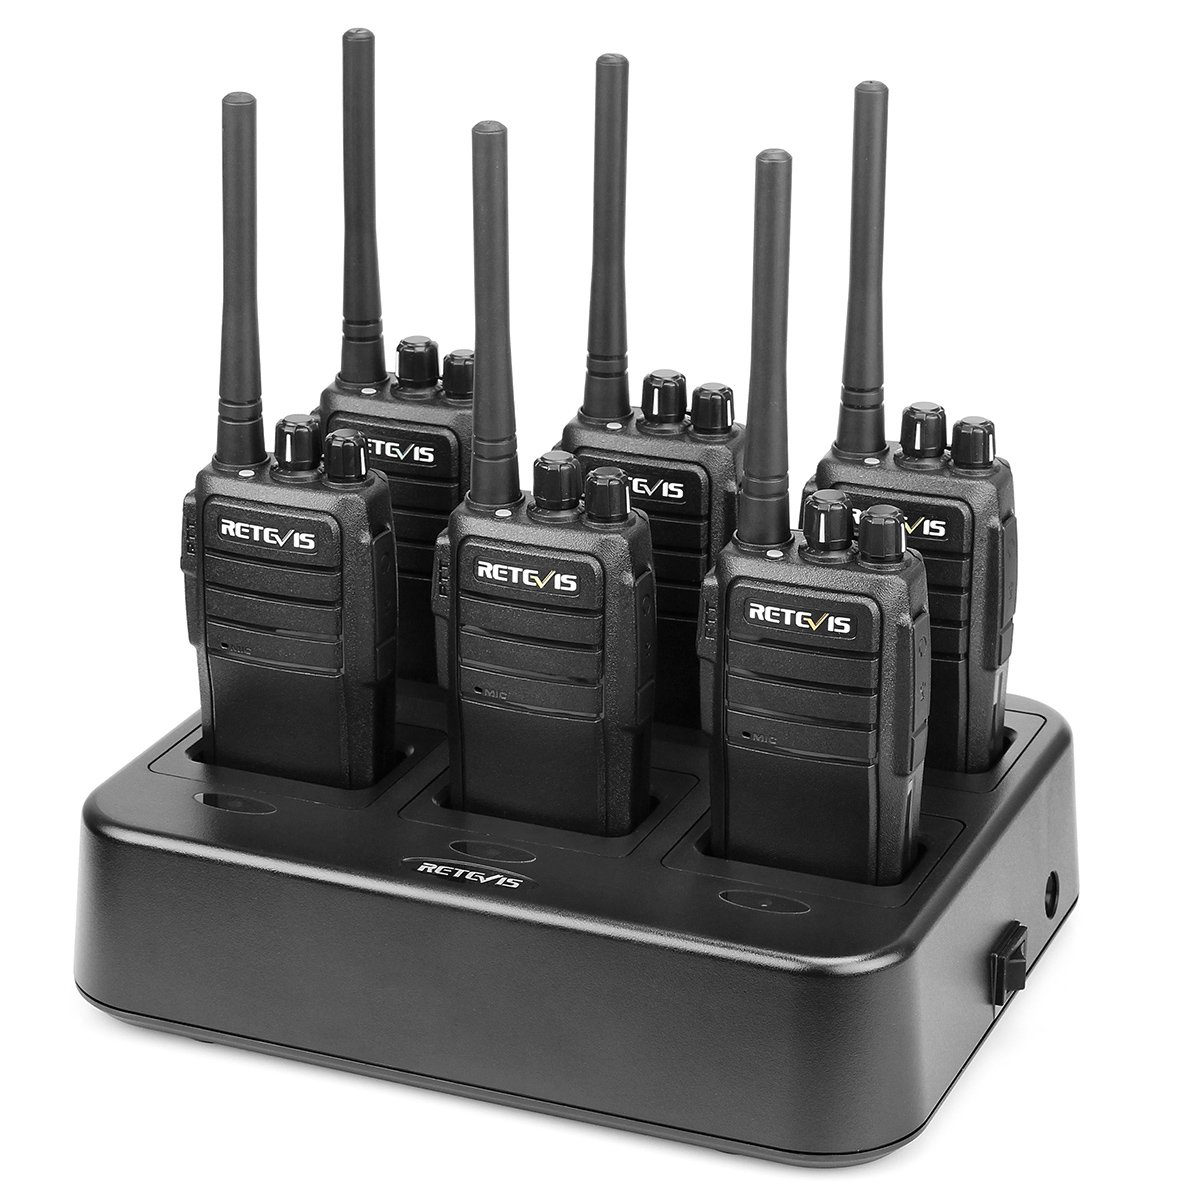 Retevis RT21 Two Way Radios Long Range FRS Walkie Talkies Rechargeable Hands Free 2 Way Radios(6 Pack) with Six-Way Multi Gang Charger